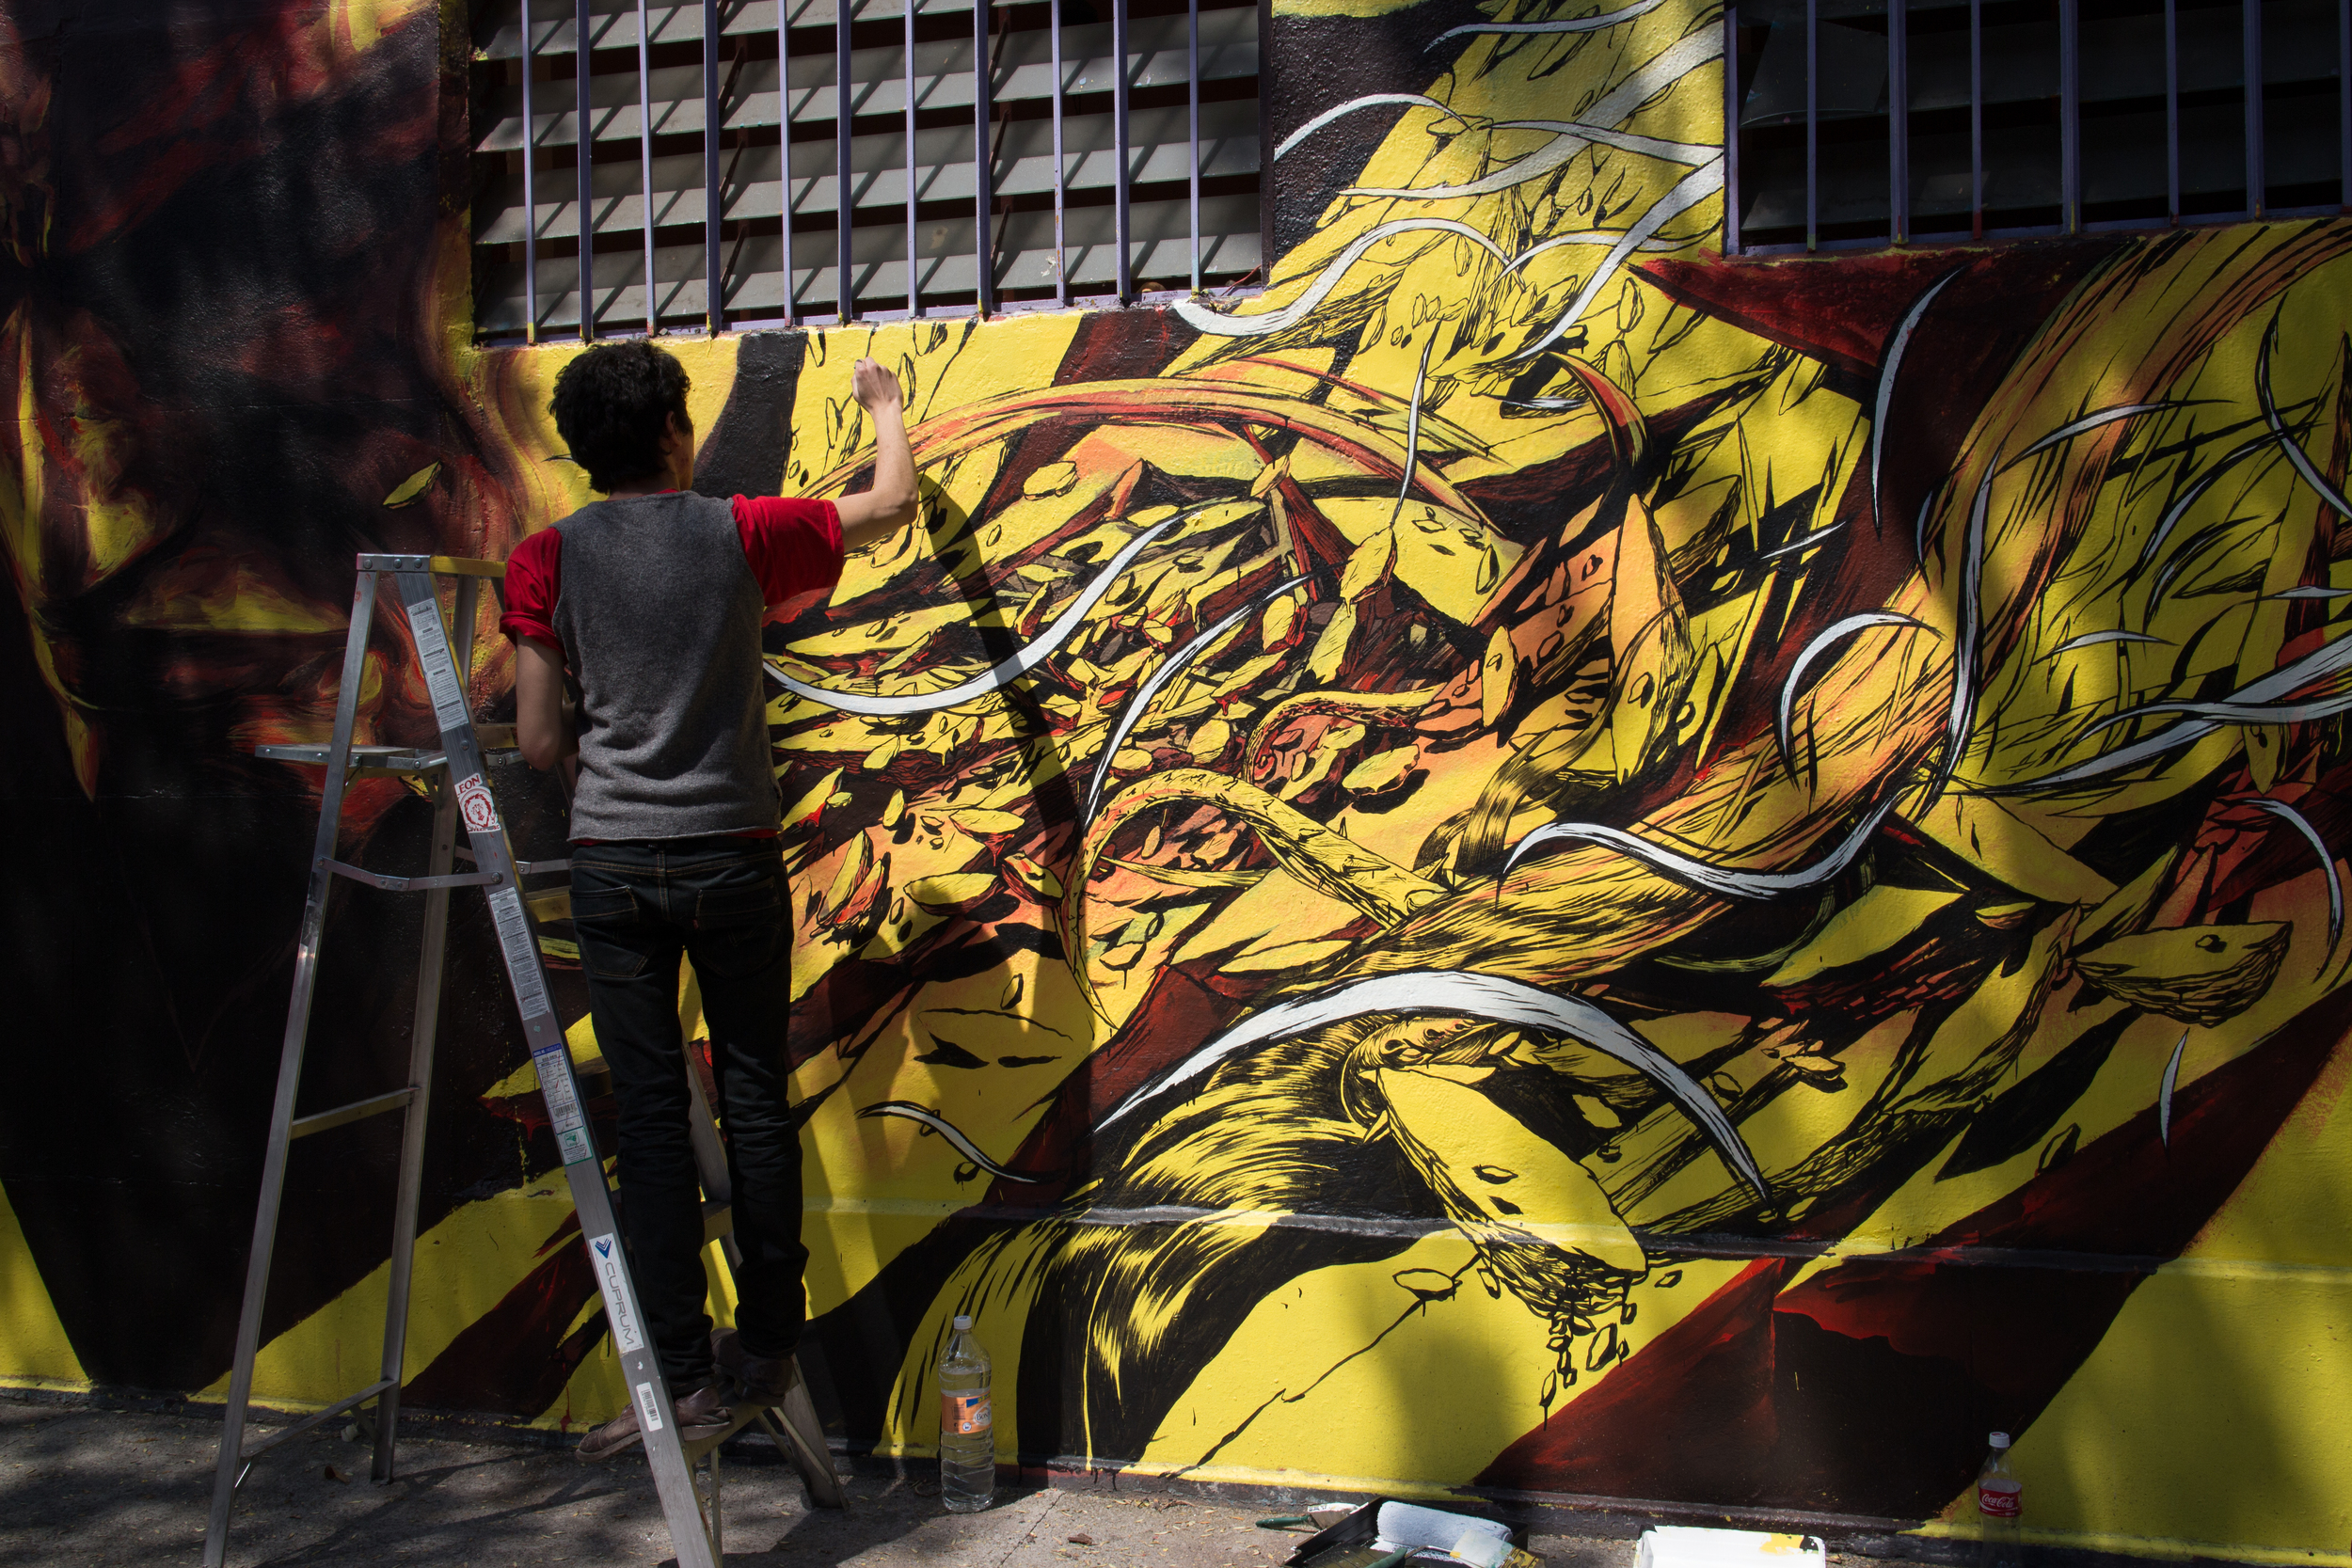 David-Choe-other-Mexico_City_street-art-4.jpg